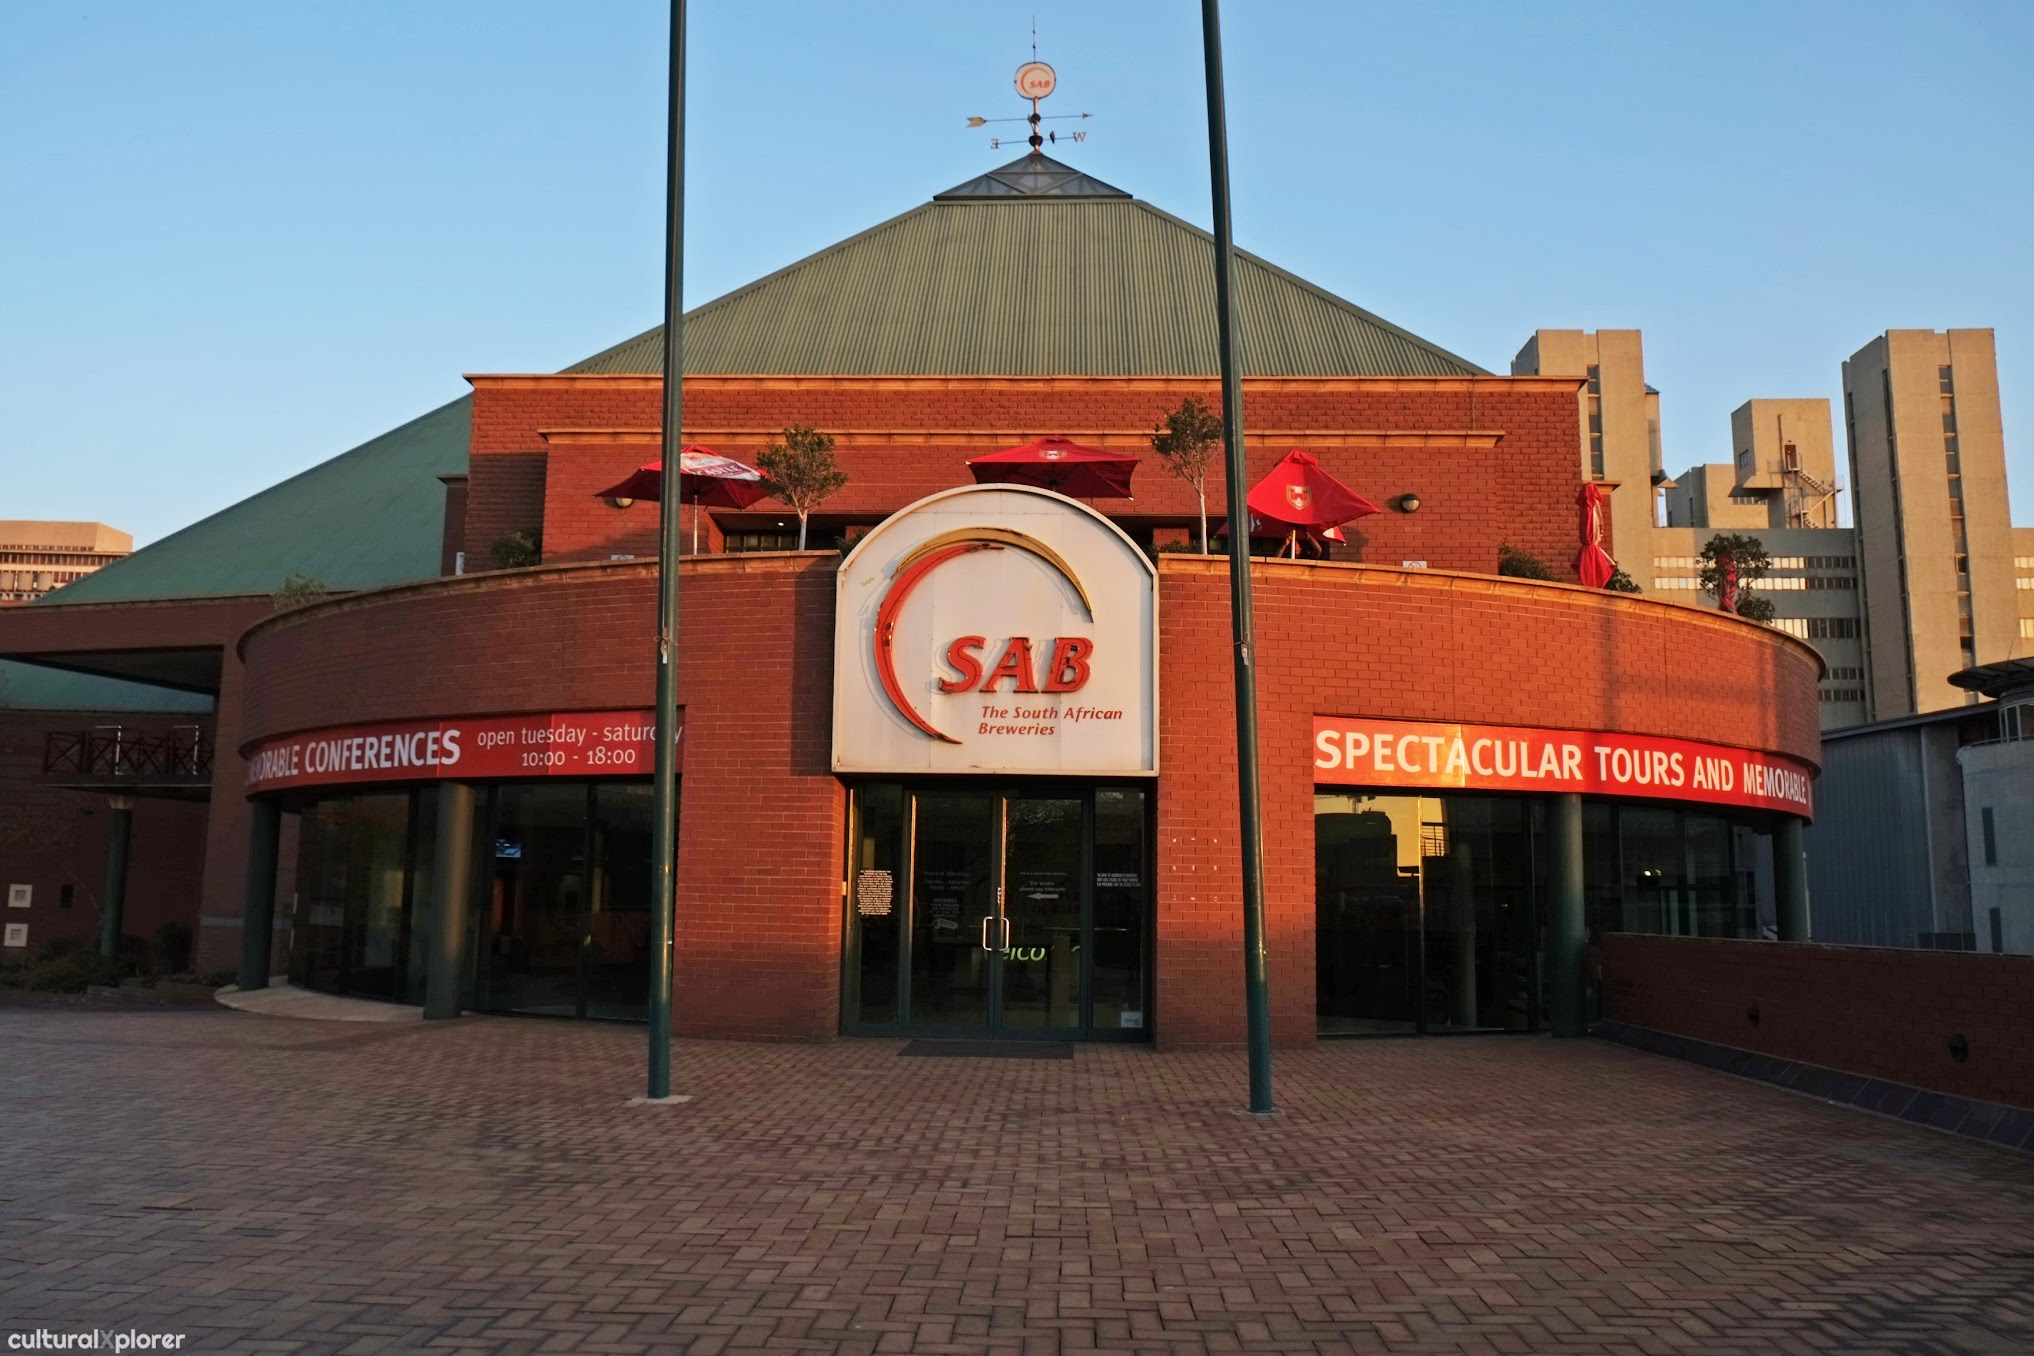 SAB World of Beer Johannesburg